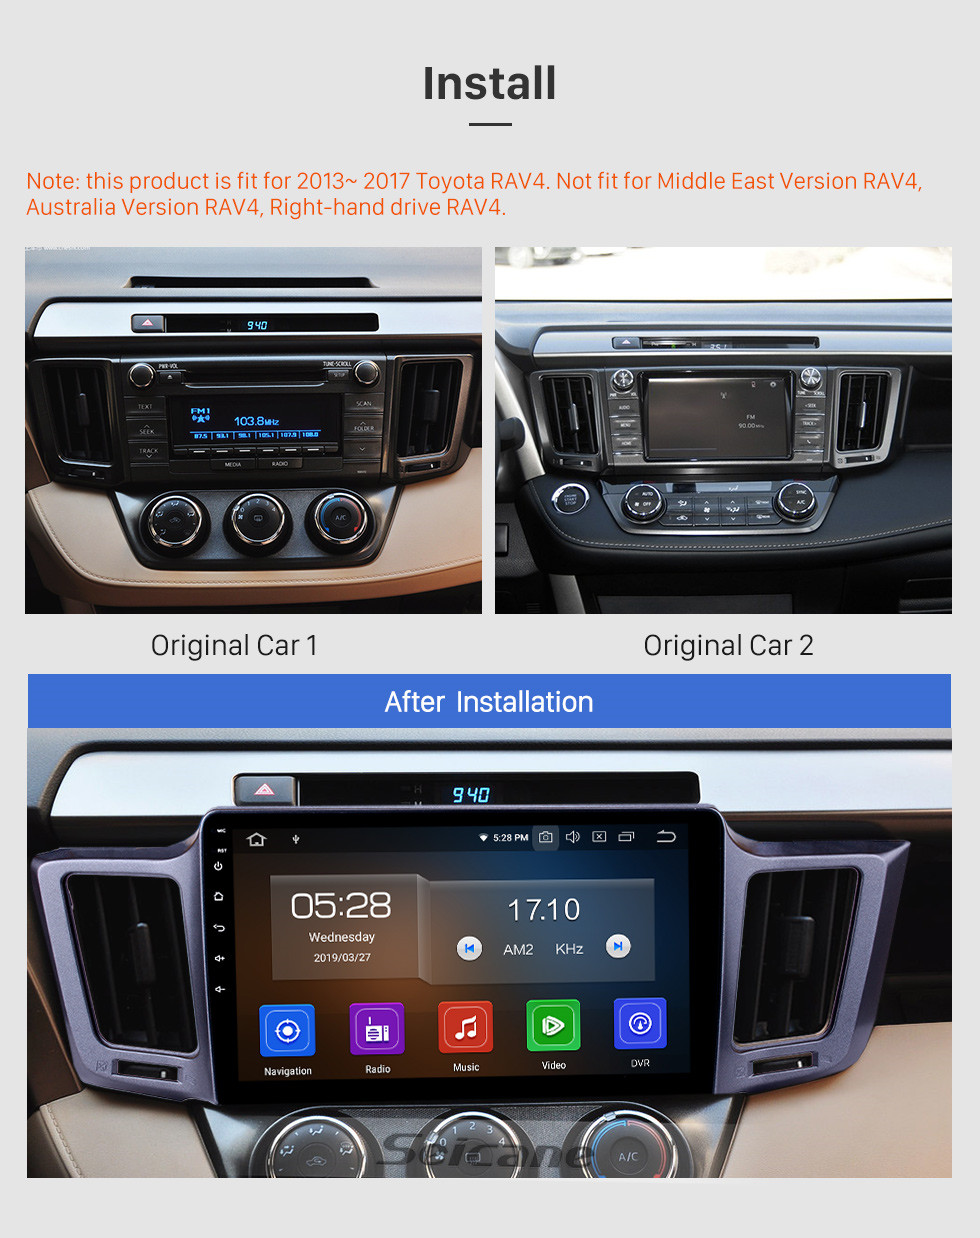 Seicane 10.1 inch Android 9.0 Radio for 2013-2016 Toyota RAV4 LHD with GPS Navigation HD Touchscreen Bluetooth Carplay support Rearview camera DAB+